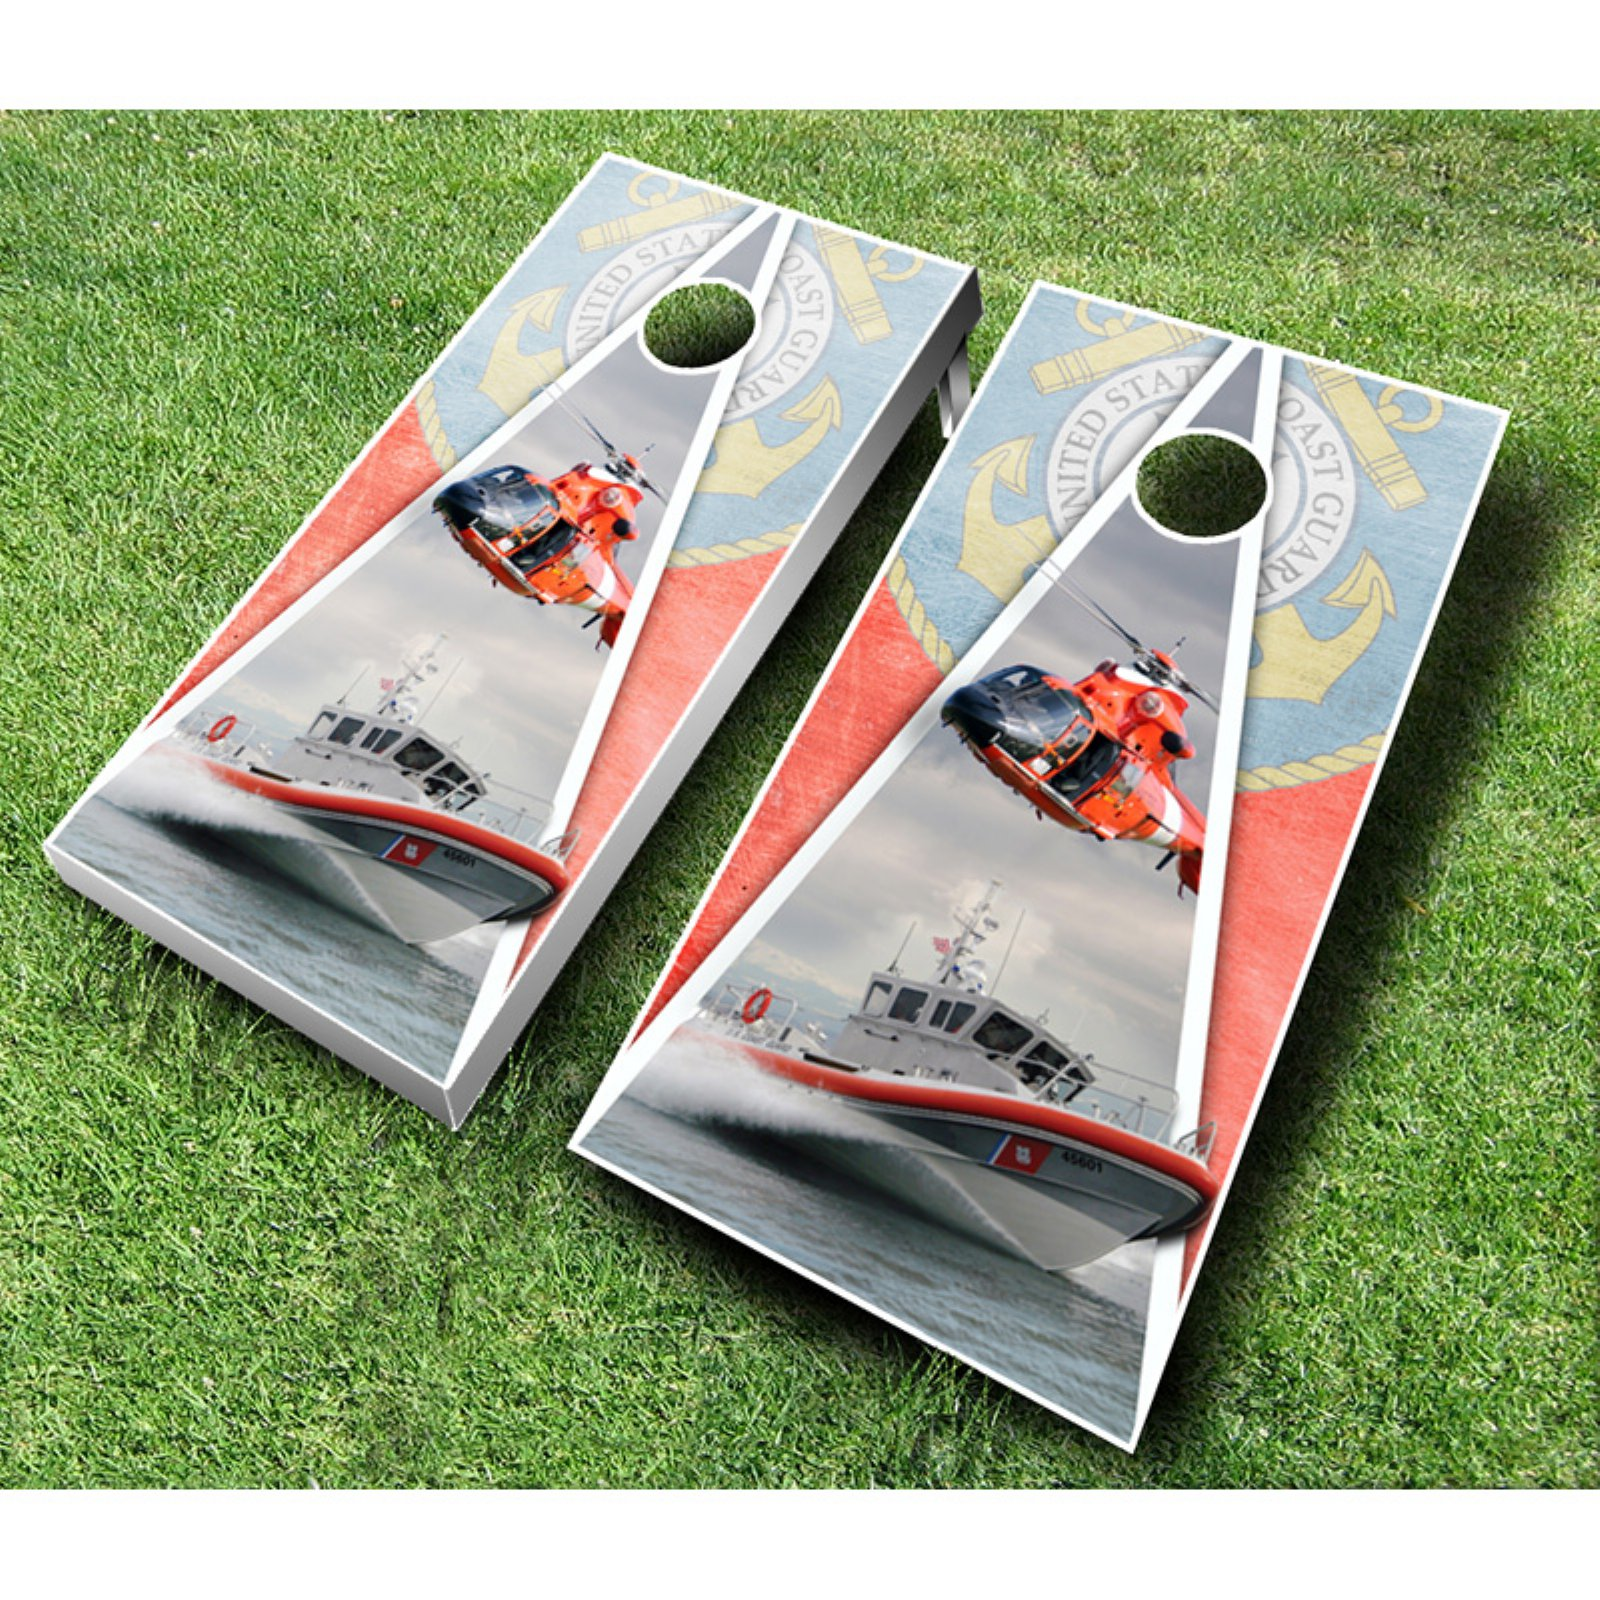 Coast Guard Cornhole Set with Bags by AJJ Cornhole